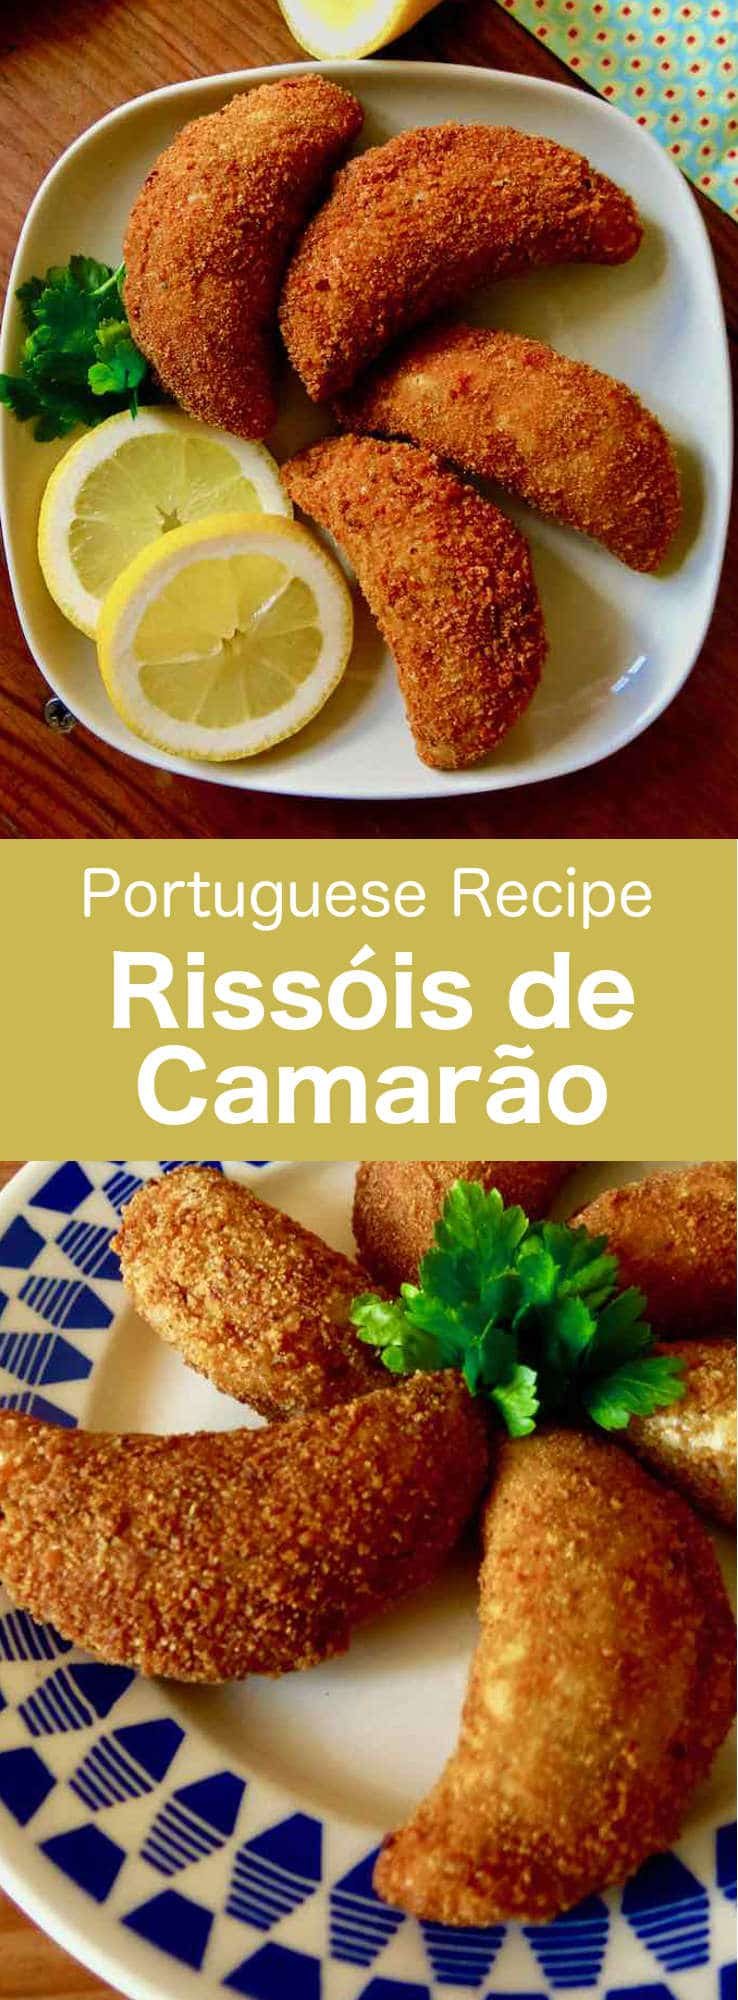 Rissóis de camarão are delicious half-moon shaped savory fried snacks from Portugal. They are stuffed with shrimp, before being breaded and then fried. #Portugal #PortugueseRecipe #WorldCuisine #196flavors